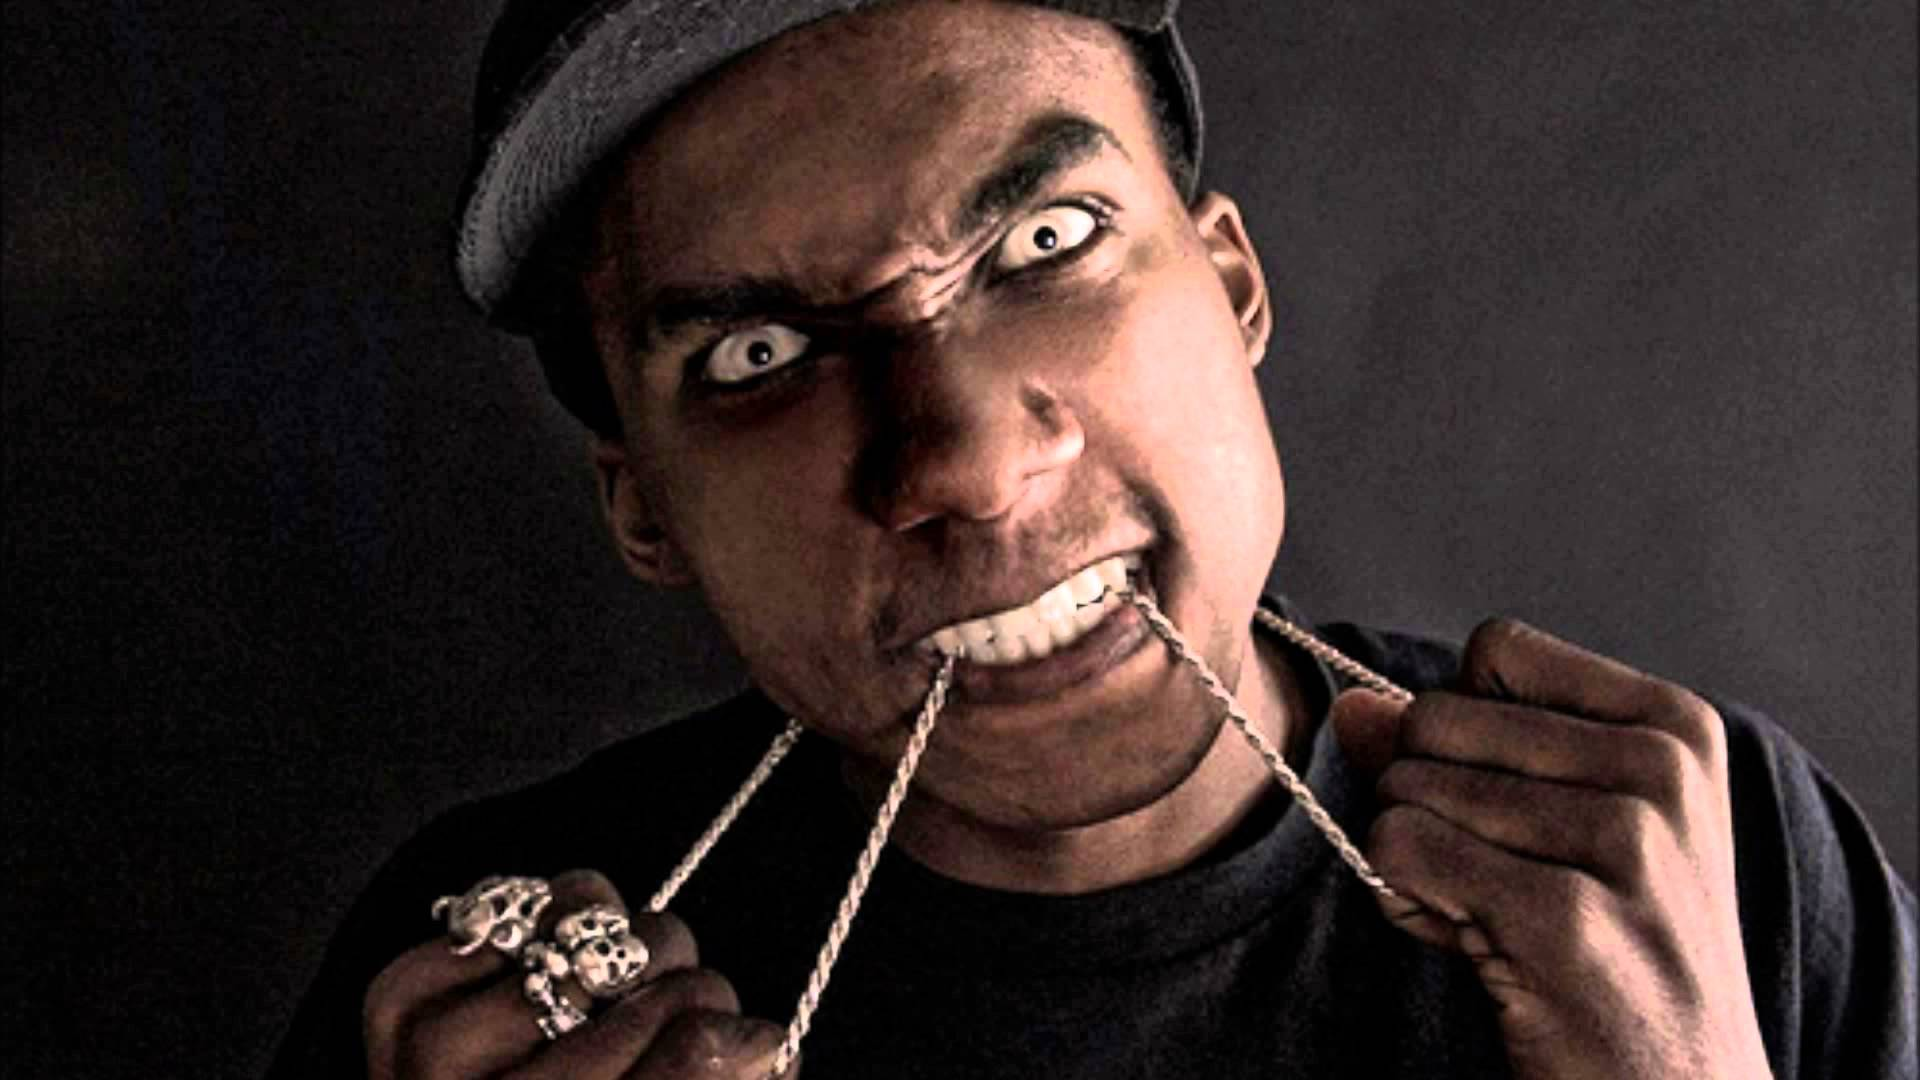 Hopsin - The Streets Are Mine